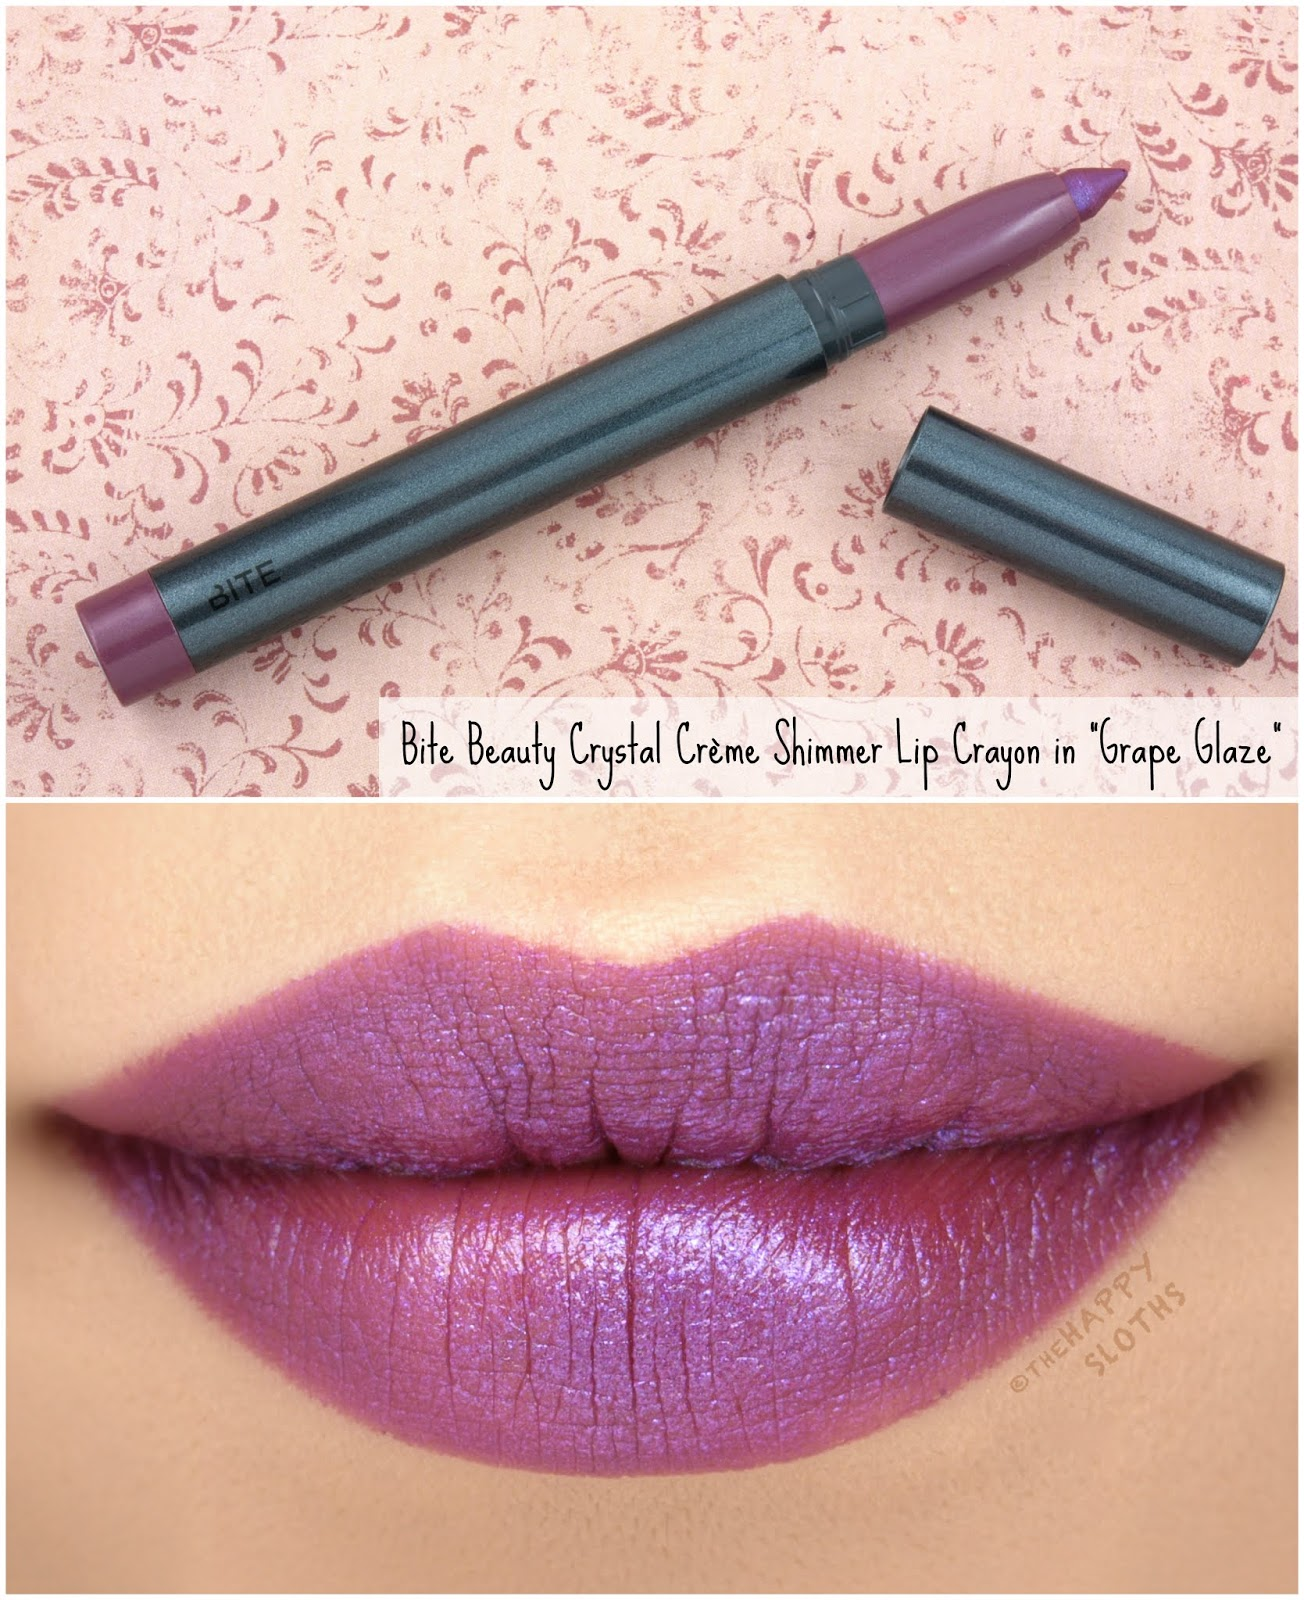 "Bite Beauty | Crystal Crème Shimmer Lip Crayon in ""Grape Glaze"": Review and Swatches"